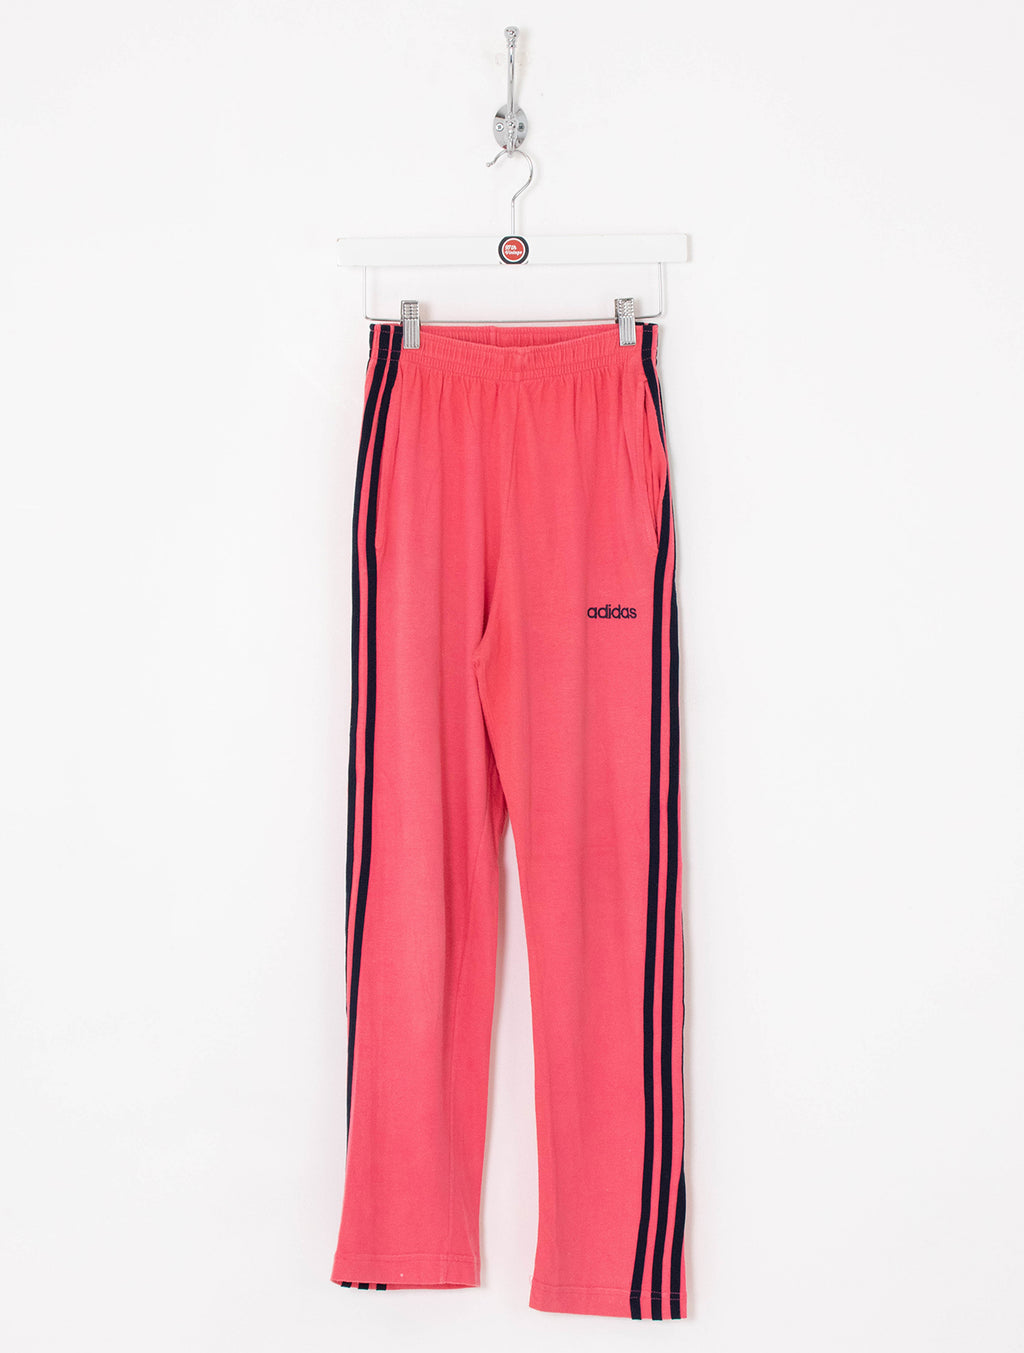 Women's Adidas Full Tracksuit (S)